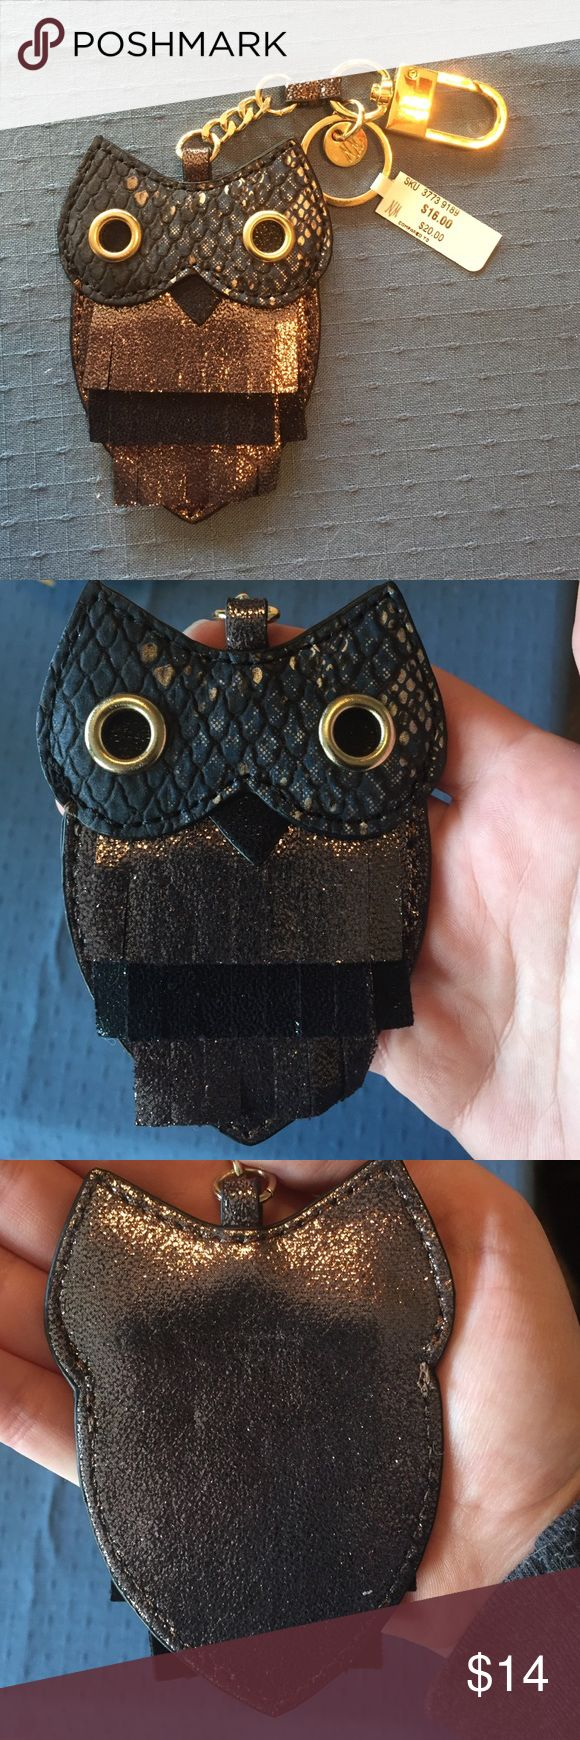 Neiman Marcus owl keychain Received as a gift and it's just too big for me to carry around with all the keys I have. I suspect it's faux leather, no material info on the tag. Offers welcome. No trades or off posh sales. Neiman Marcus Accessories Key & Card Holders